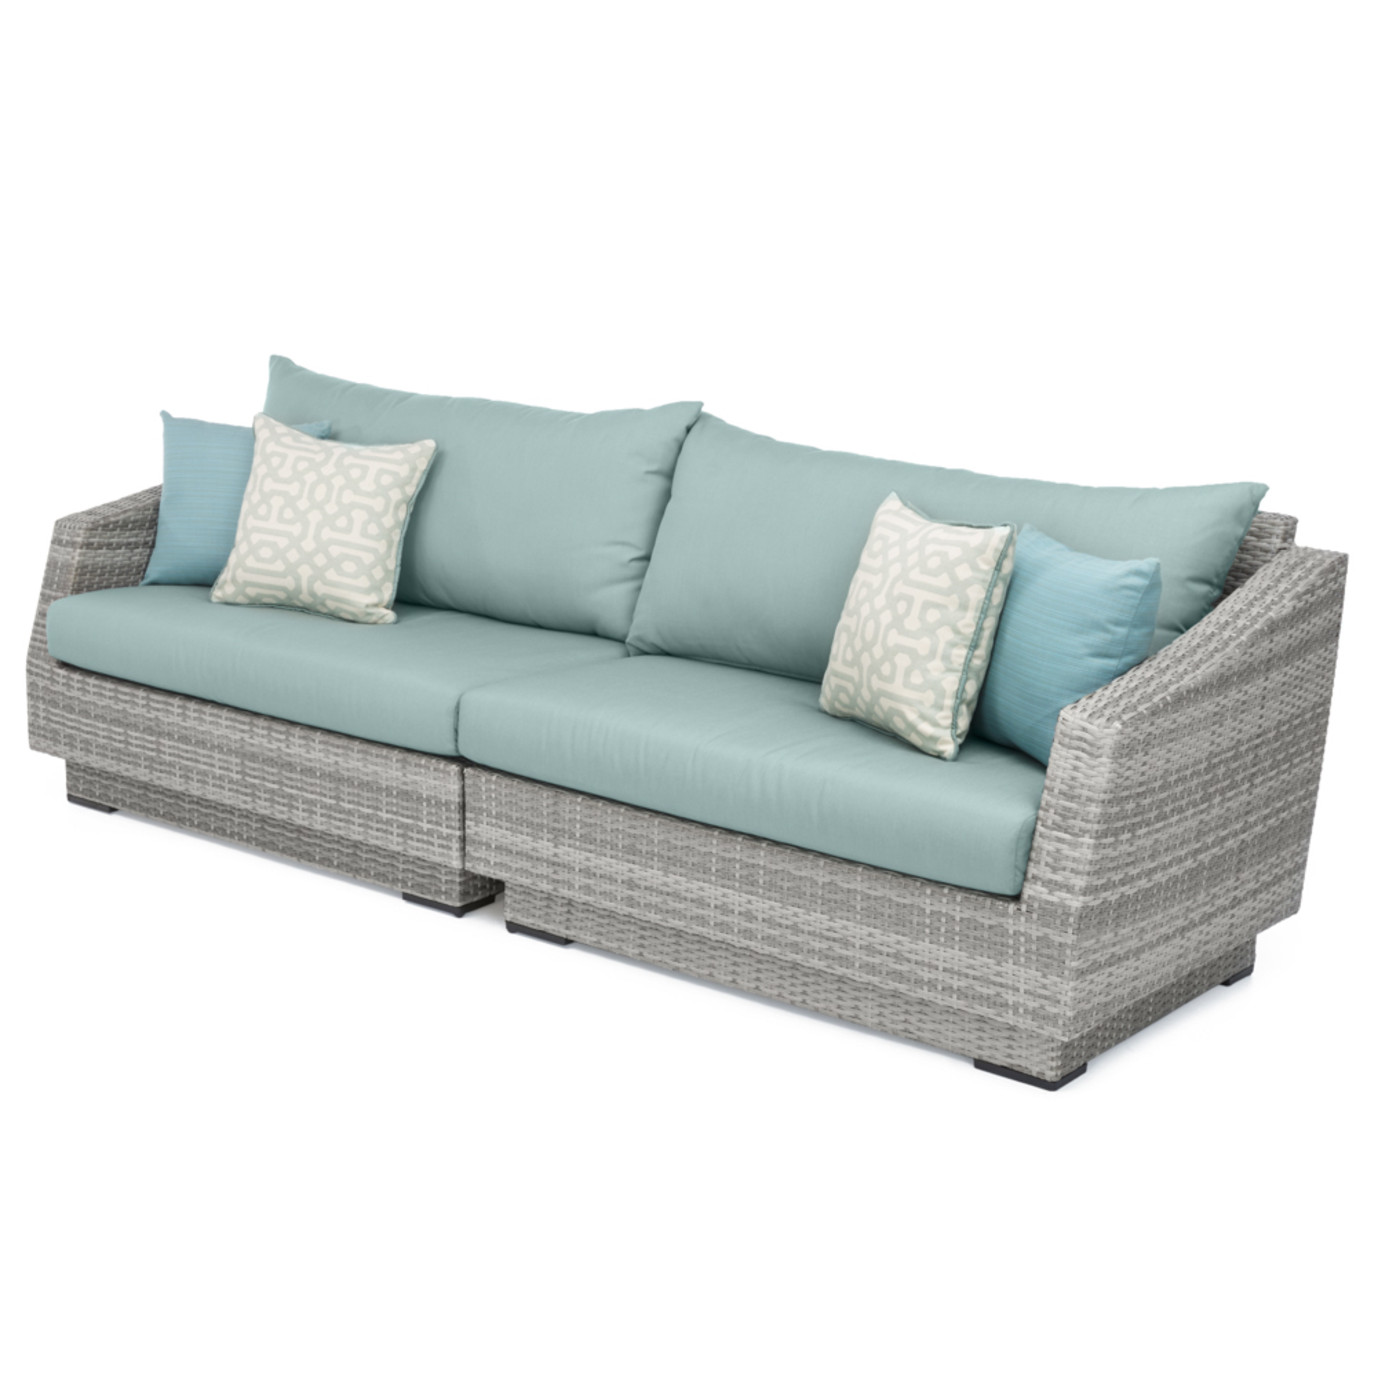 Cannes™ Sofa - Spa Blue